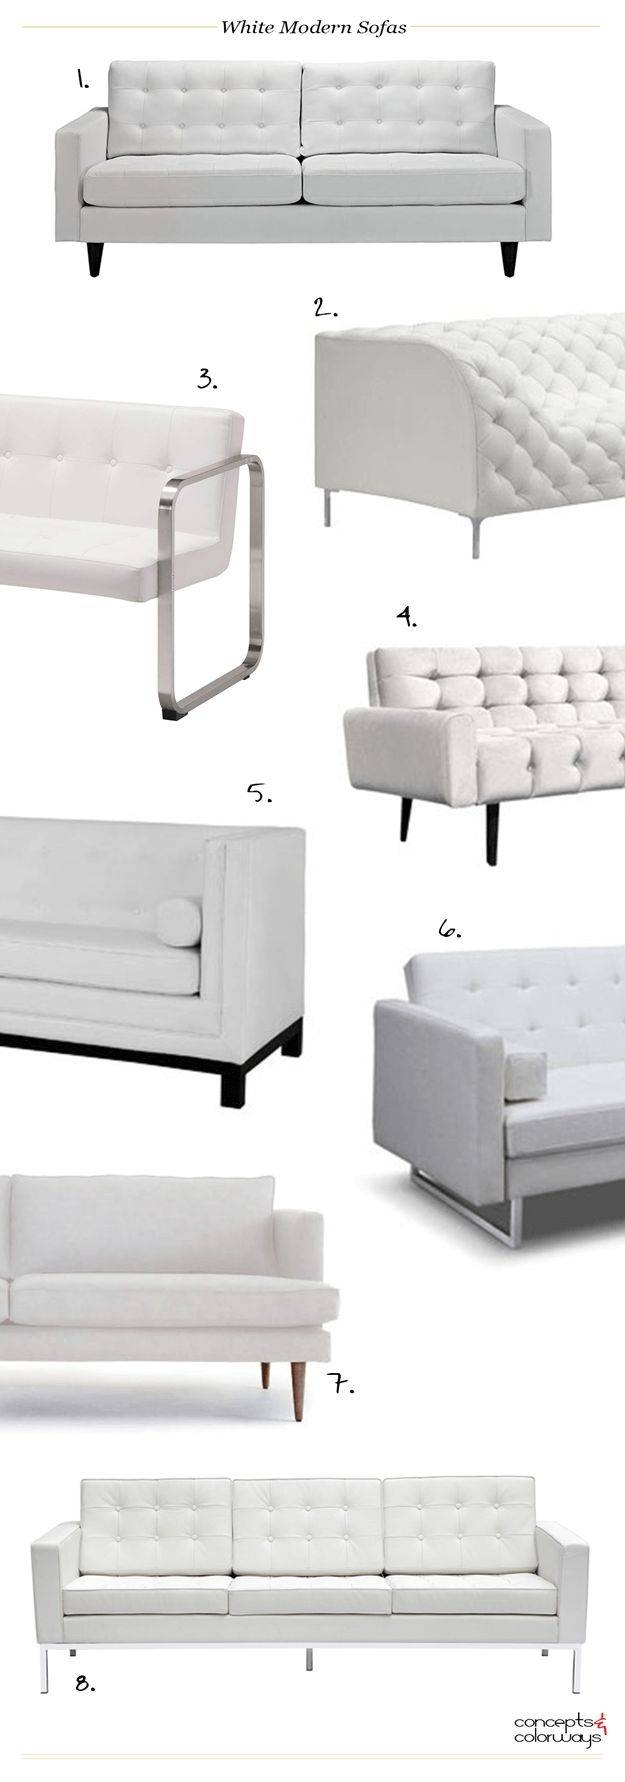 Best 25+ Moderne Sofas Ideas That You Will Like On Pinterest throughout White Modern Sofas (Image 3 of 30)